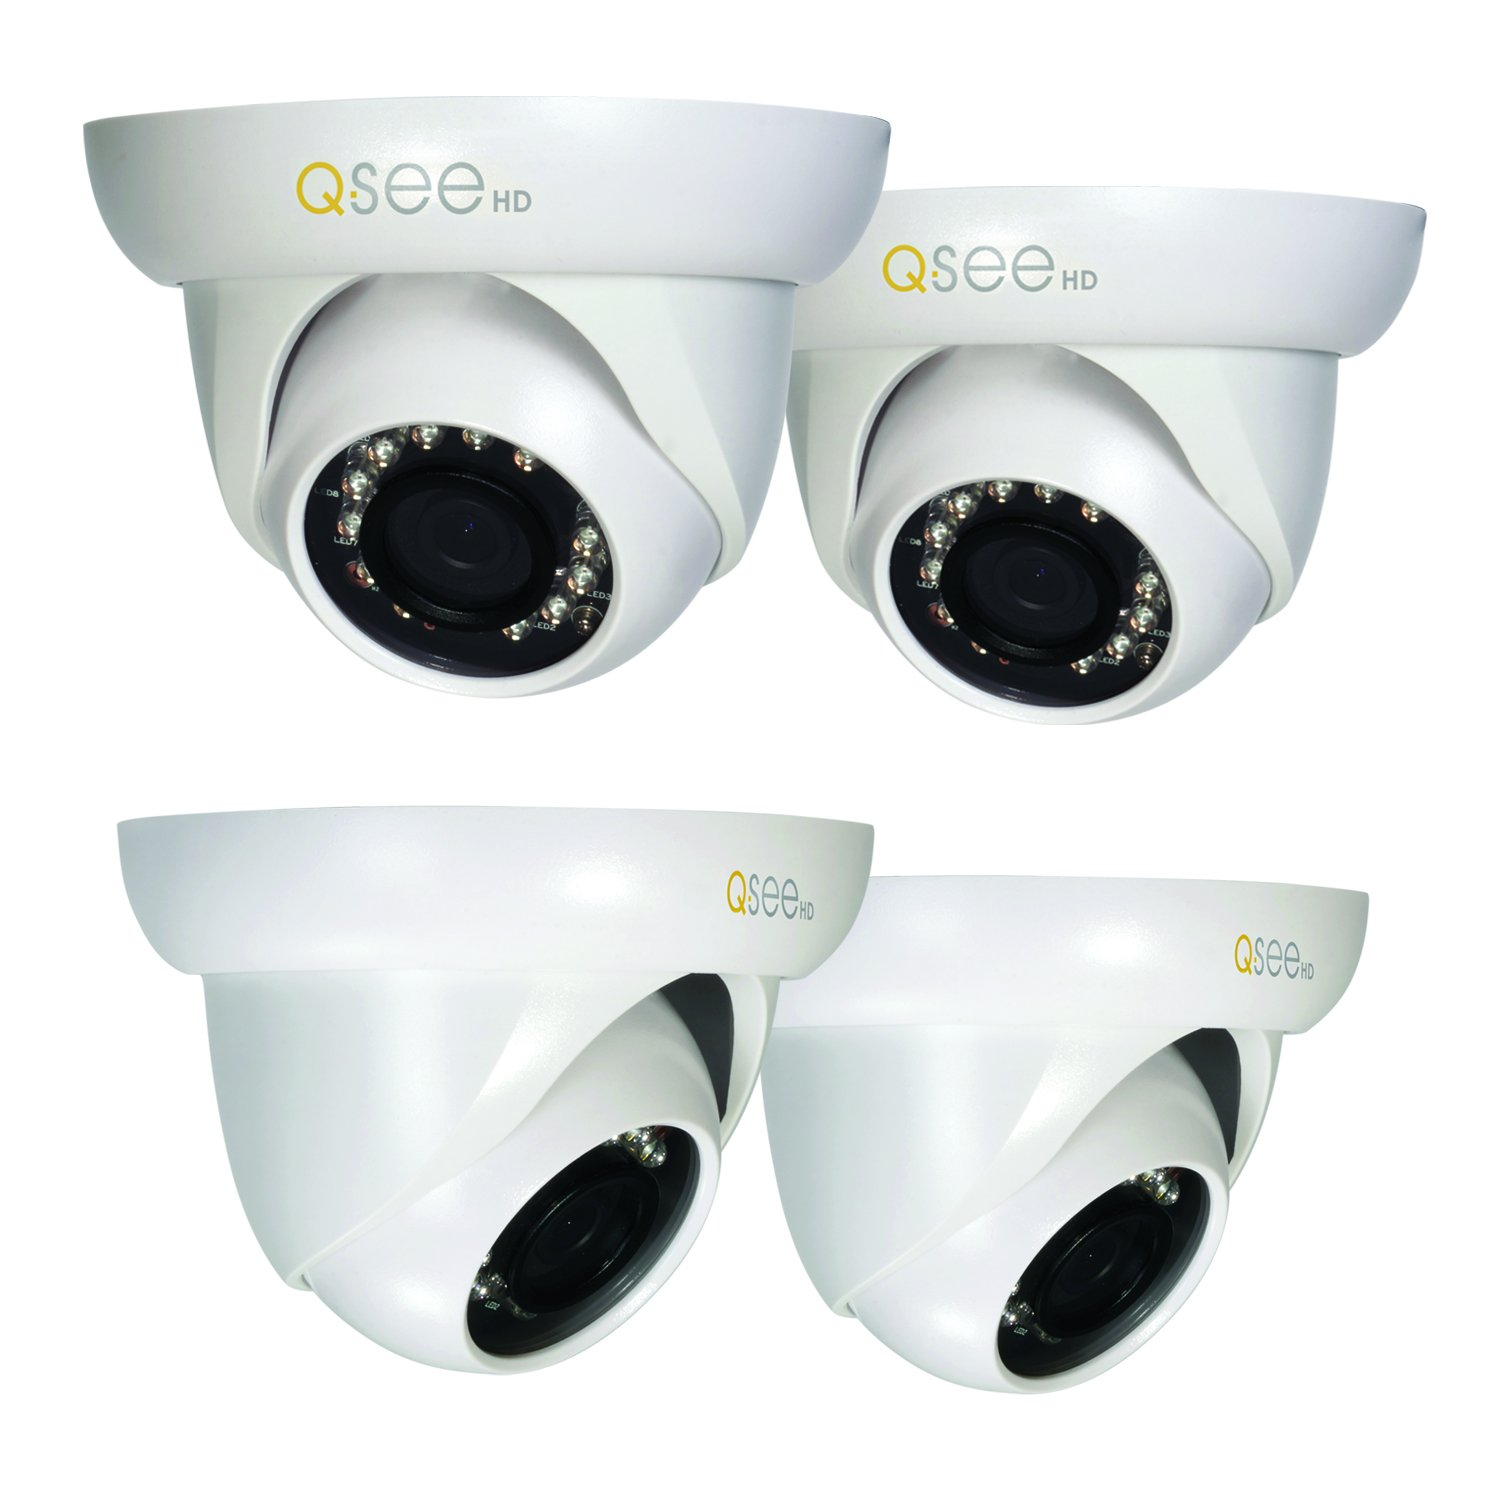 Q-See QCA7202D-4 720p High Definition Analog, Plastic Housing, Dome Security Camera 4-Pack (White)